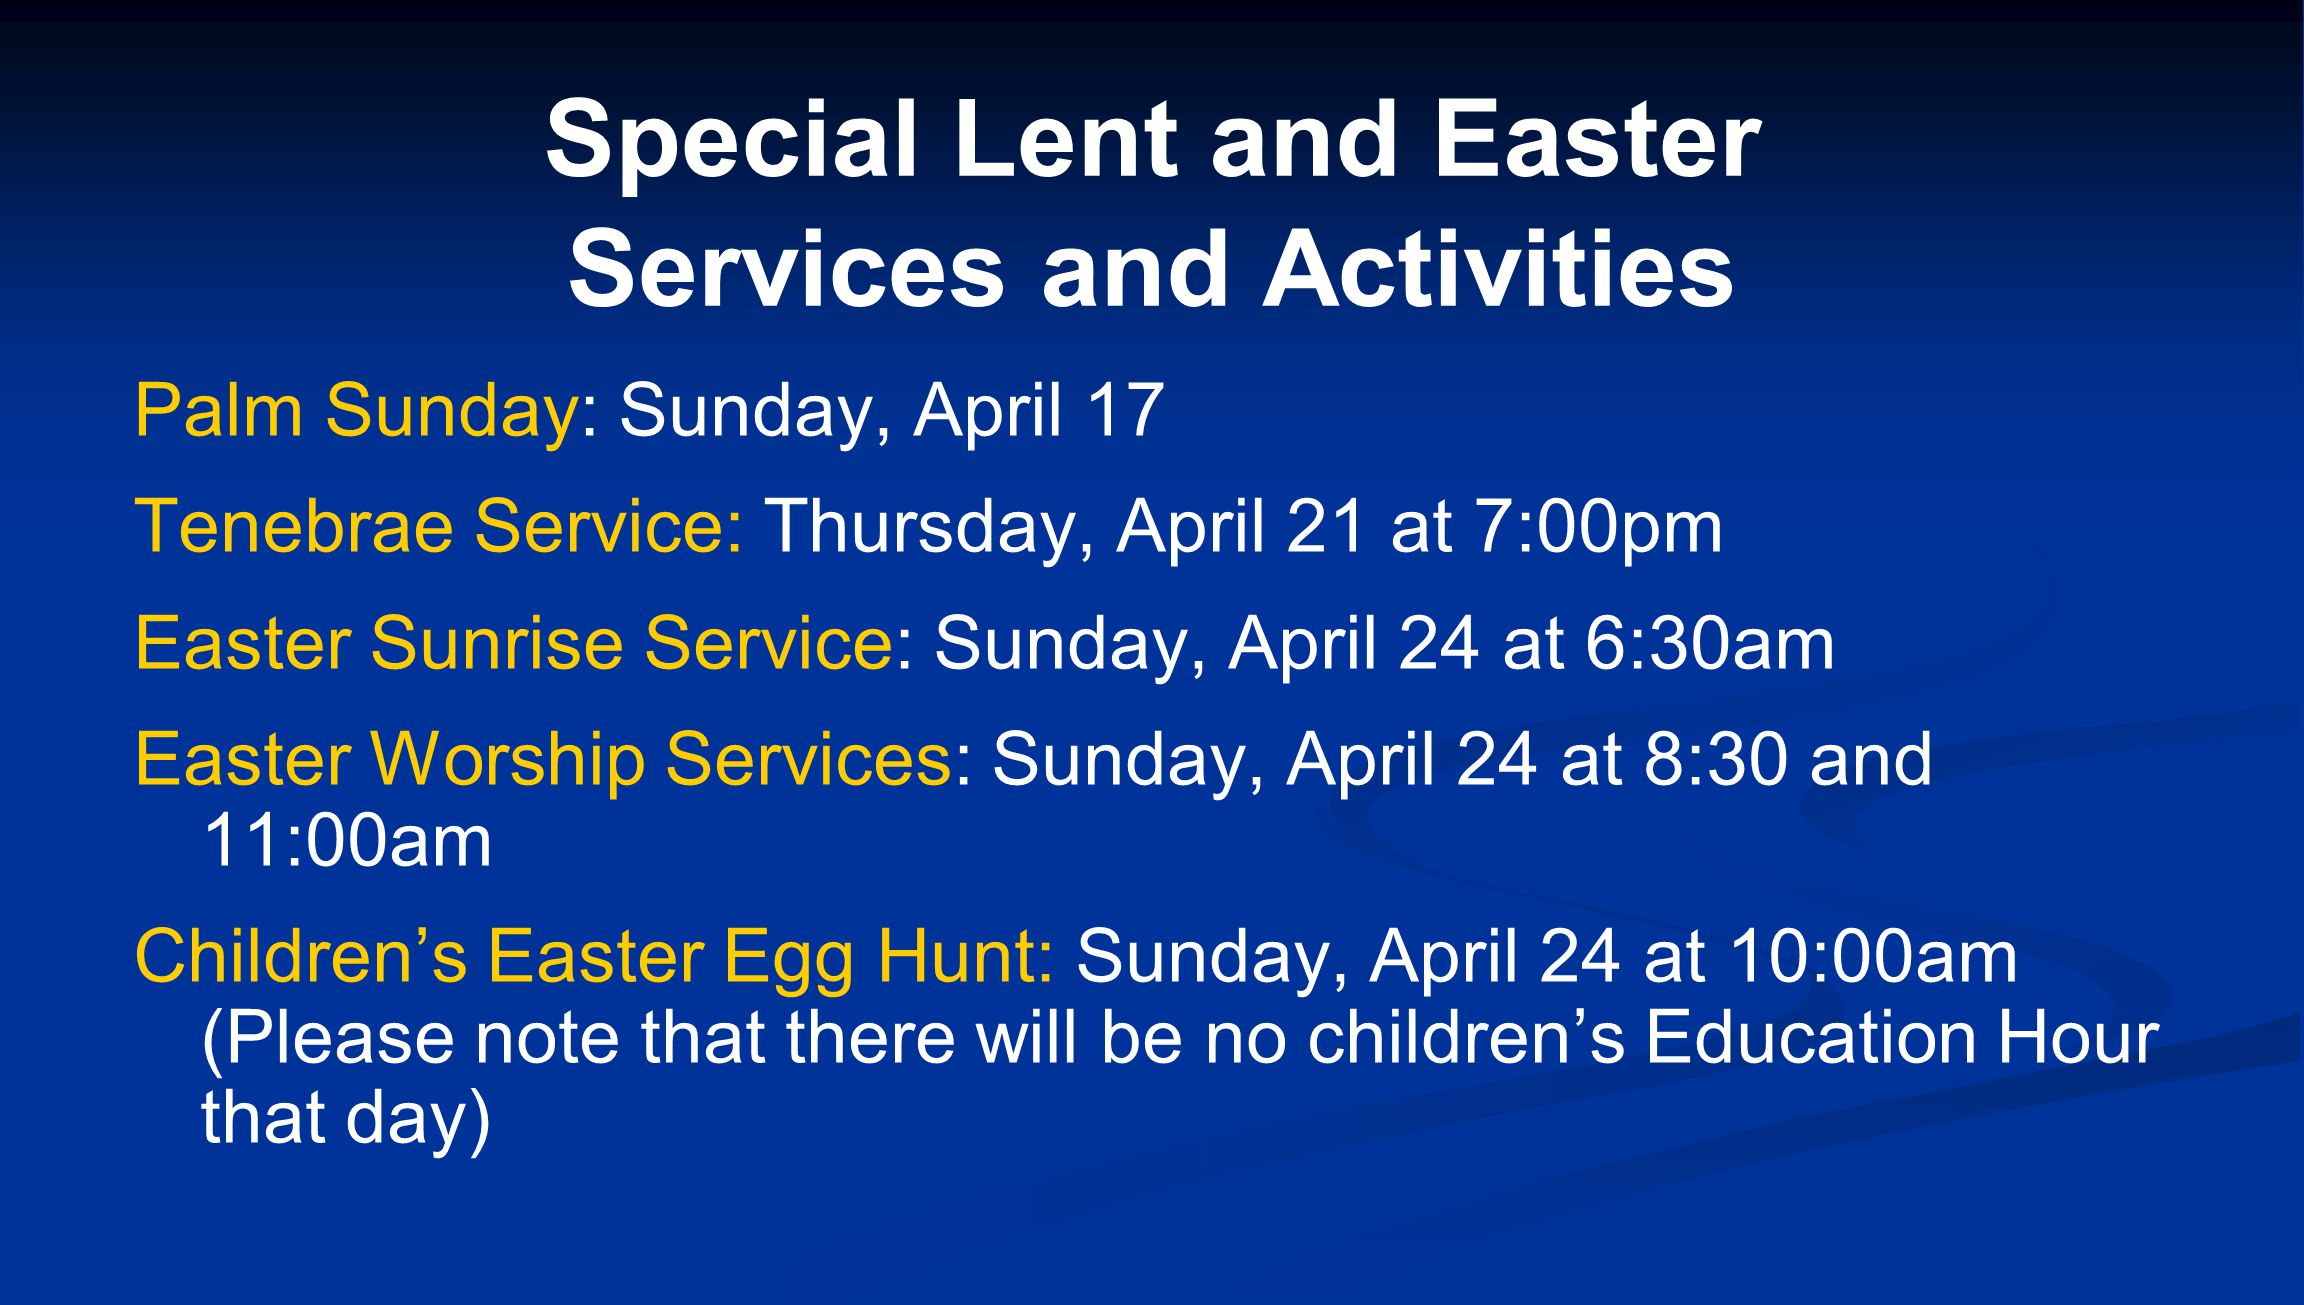 Special Lent and Easter Services and Activities Palm Sunday: Sunday, April 17 Tenebrae Service: Thursday, April 21 at 7:00pm Easter Sunrise Service: Sunday, April 24 at 6:30am Easter Worship Services: Sunday, April 24 at 8:30 and 11:00am Children's Easter Egg Hunt: Sunday, April 24 at 10:00am (Please note that there will be no children's Education Hour that day)